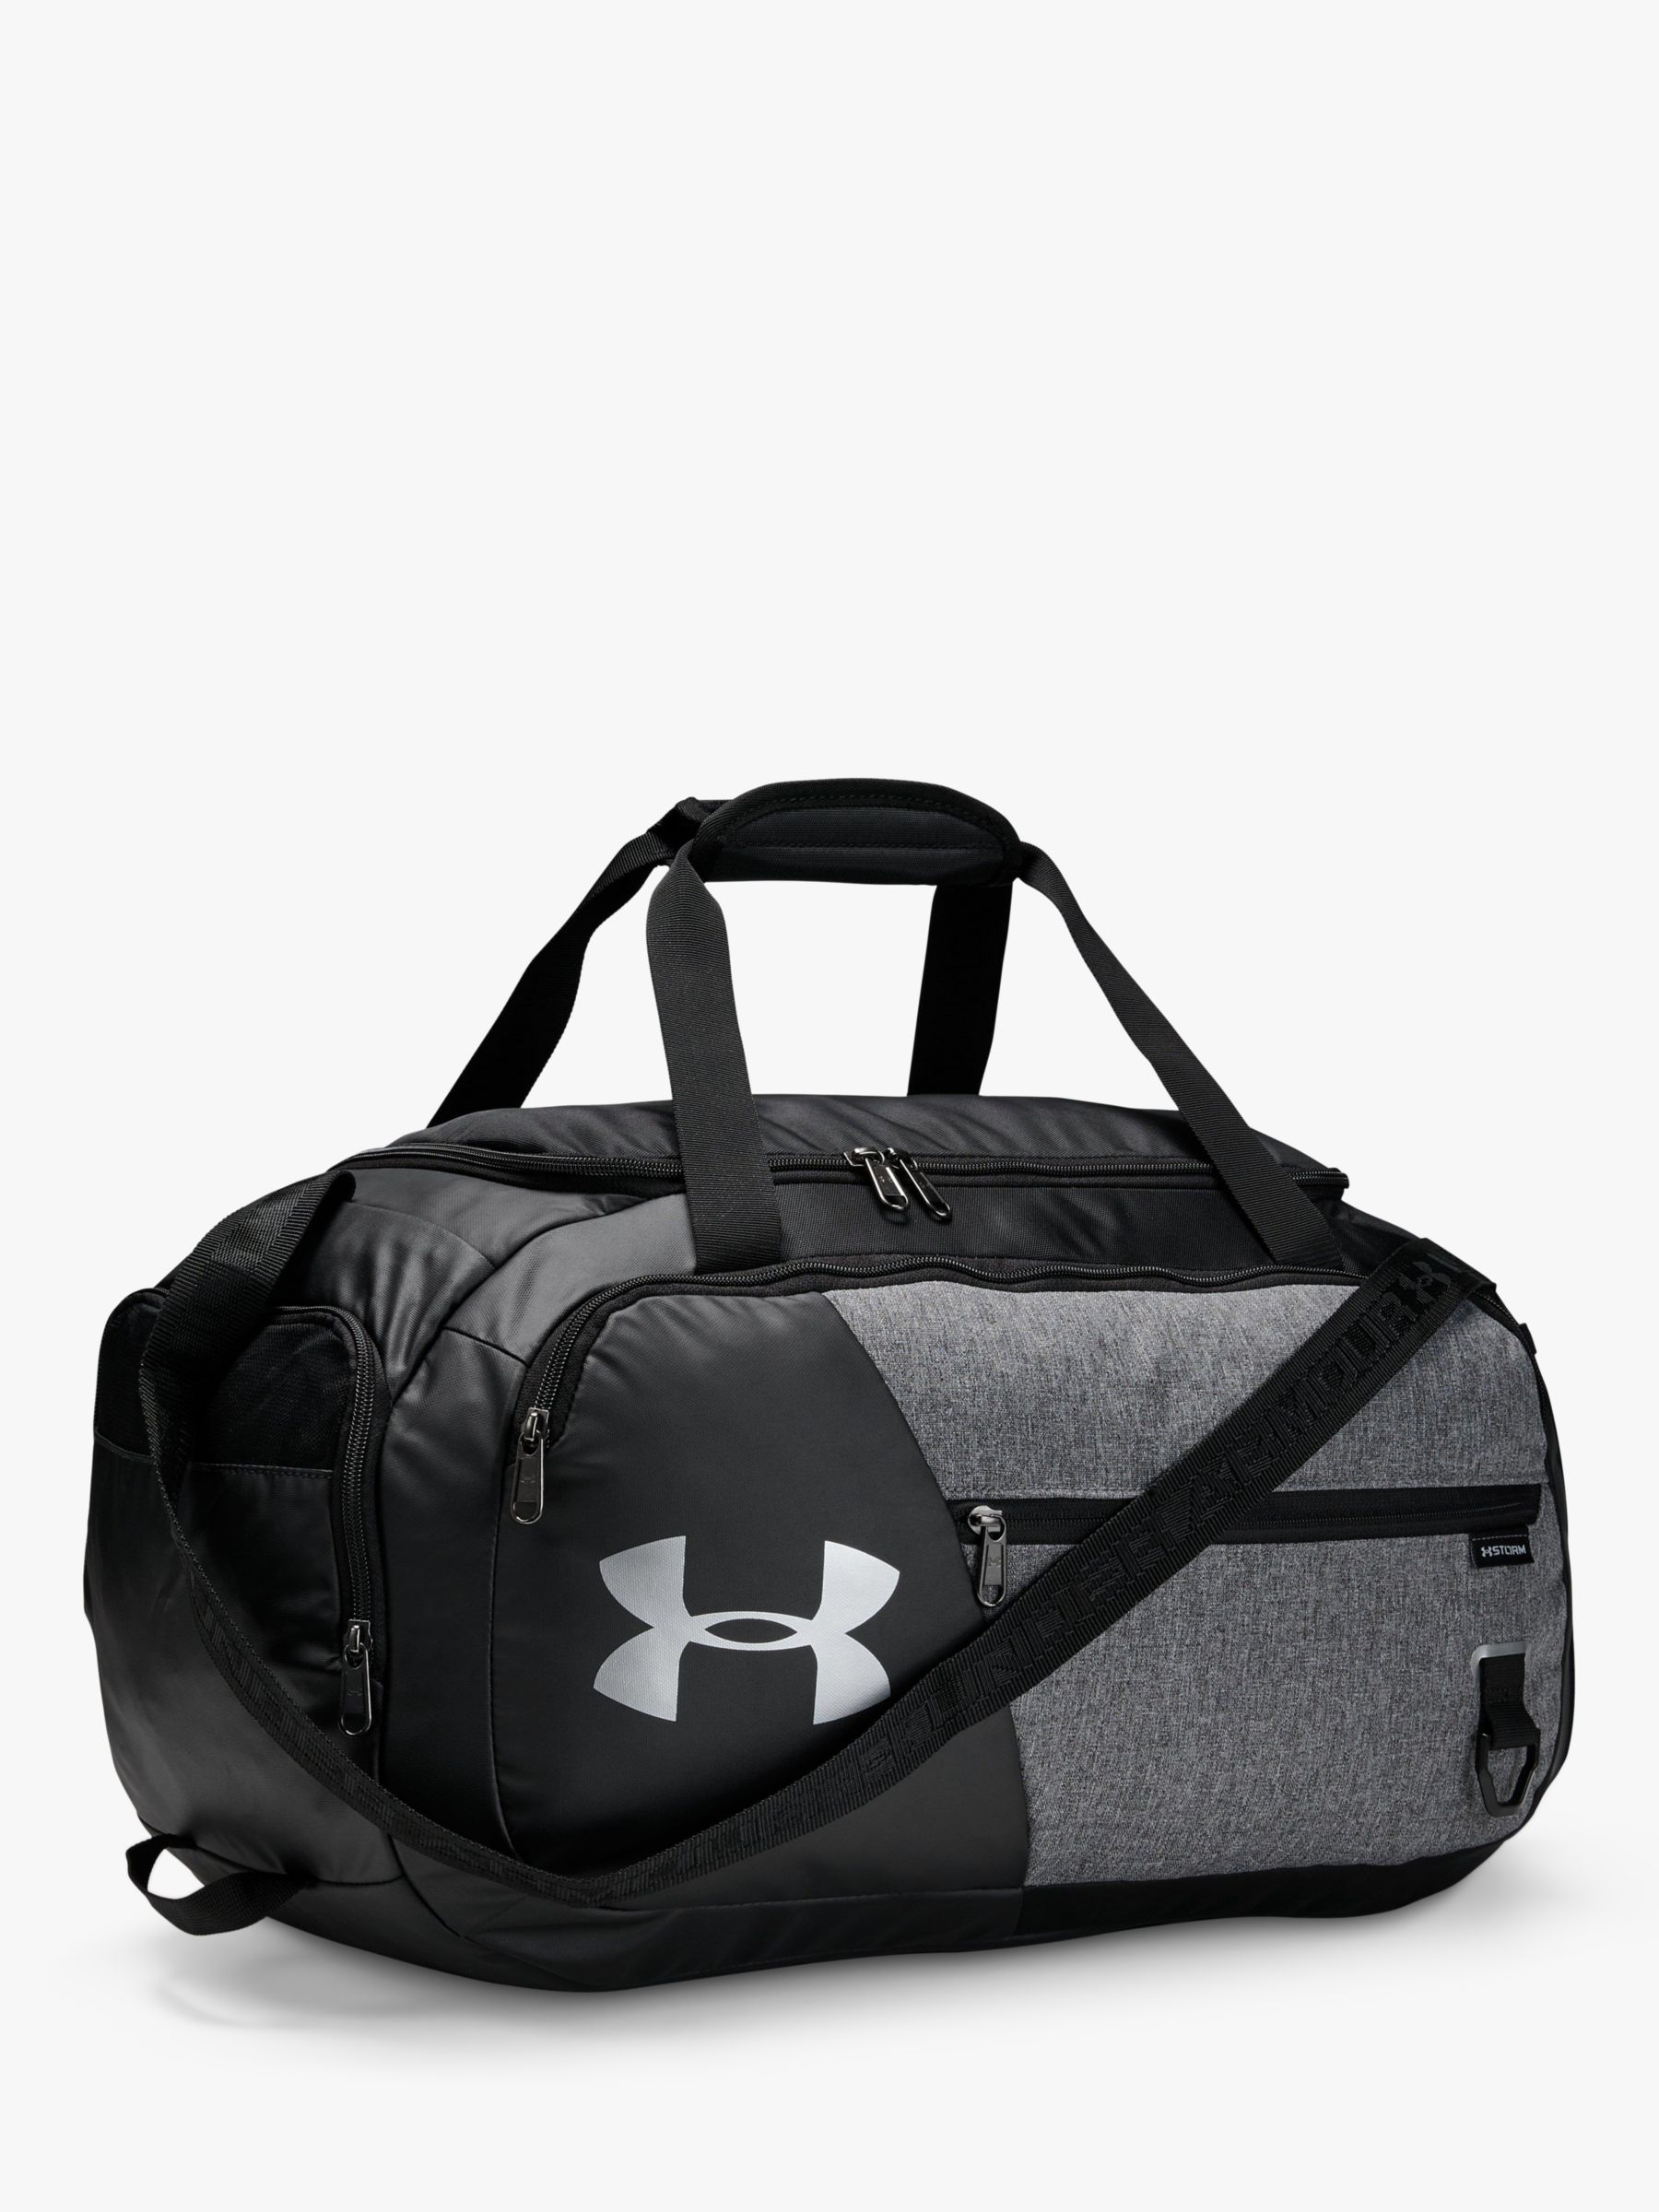 Under Armour Under Armour Undeniable 3.0 Duffel Bag, Small